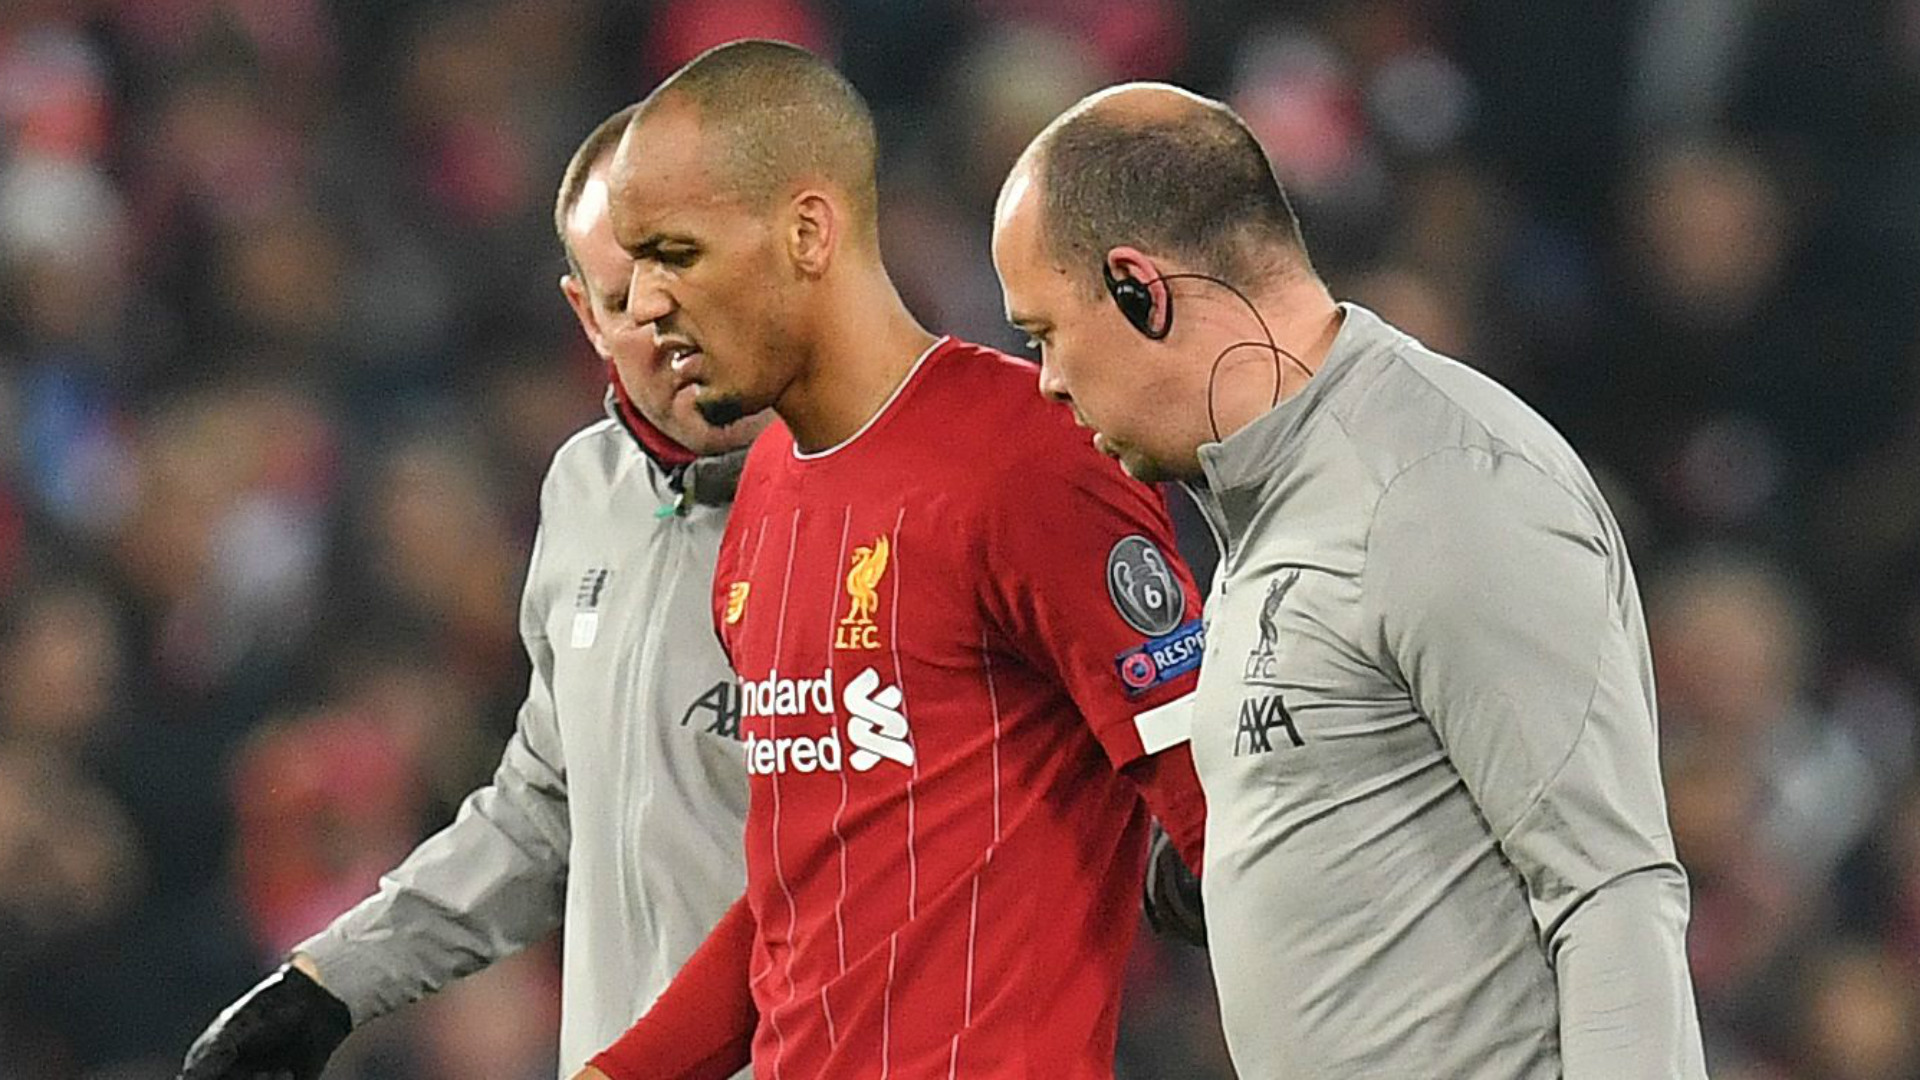 Fabinho's Ankle Injury To Rule Him Out Until January – Liverpool